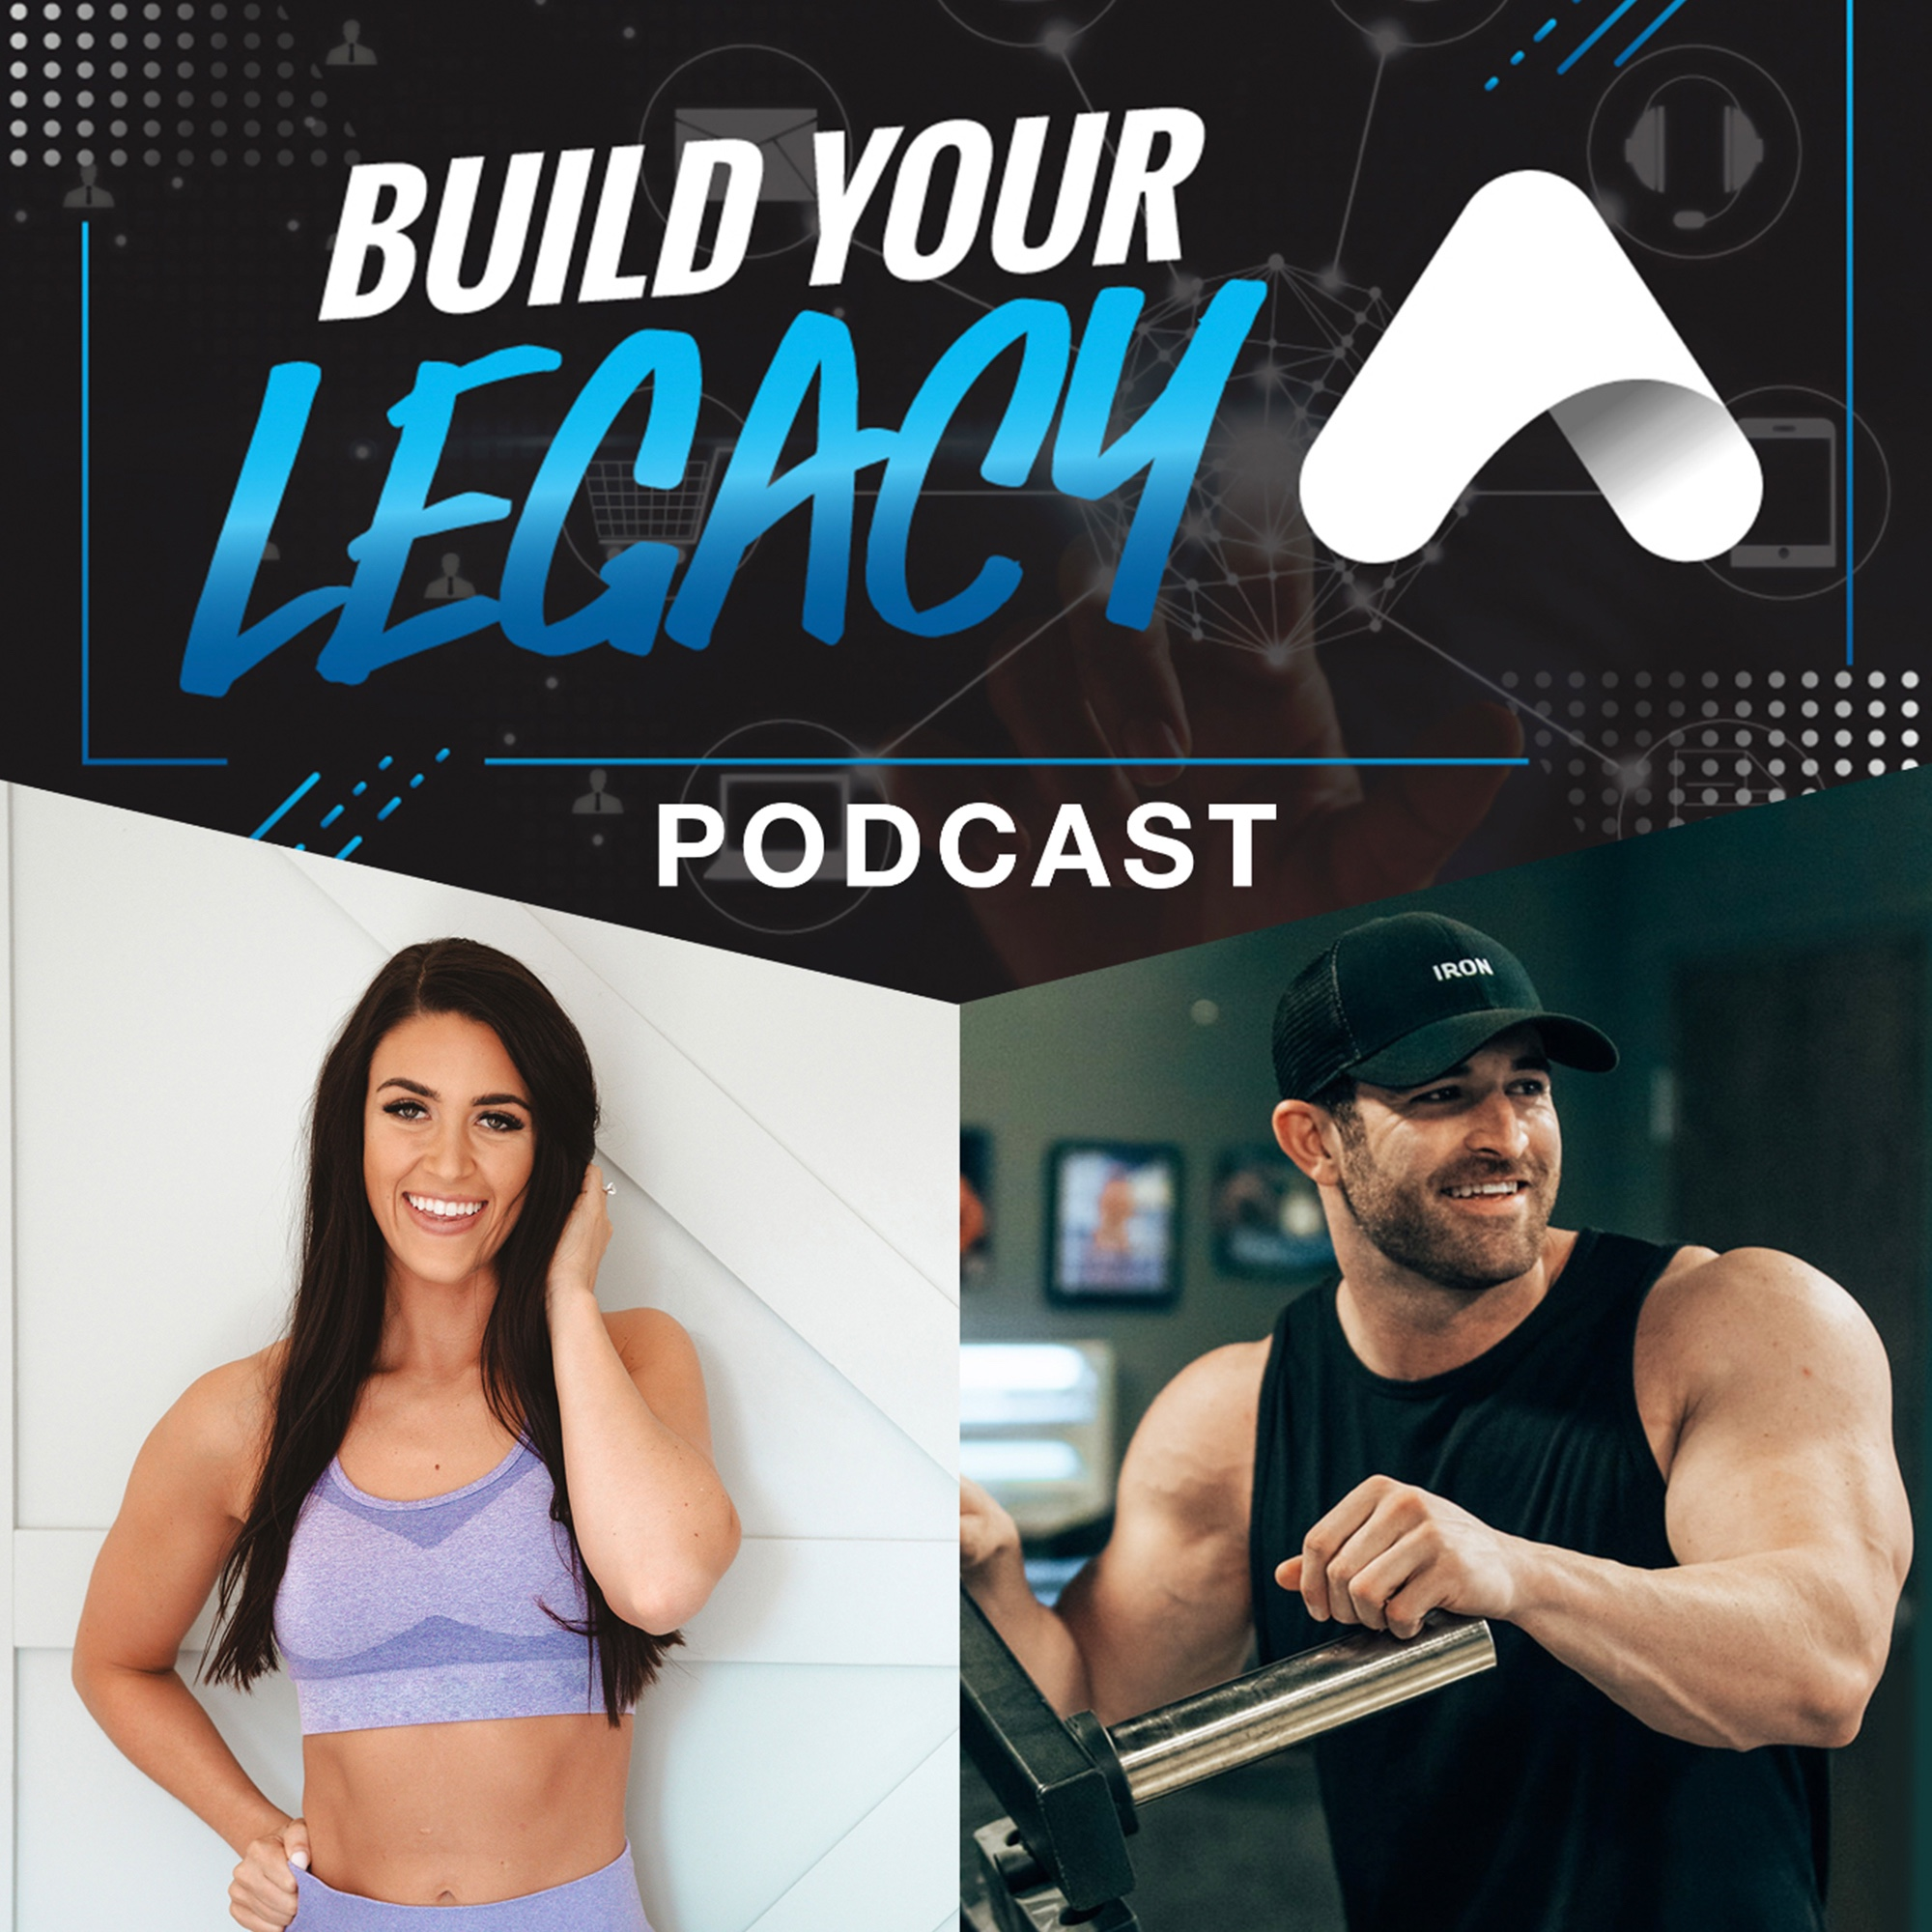 Build Your Legacy Podcast